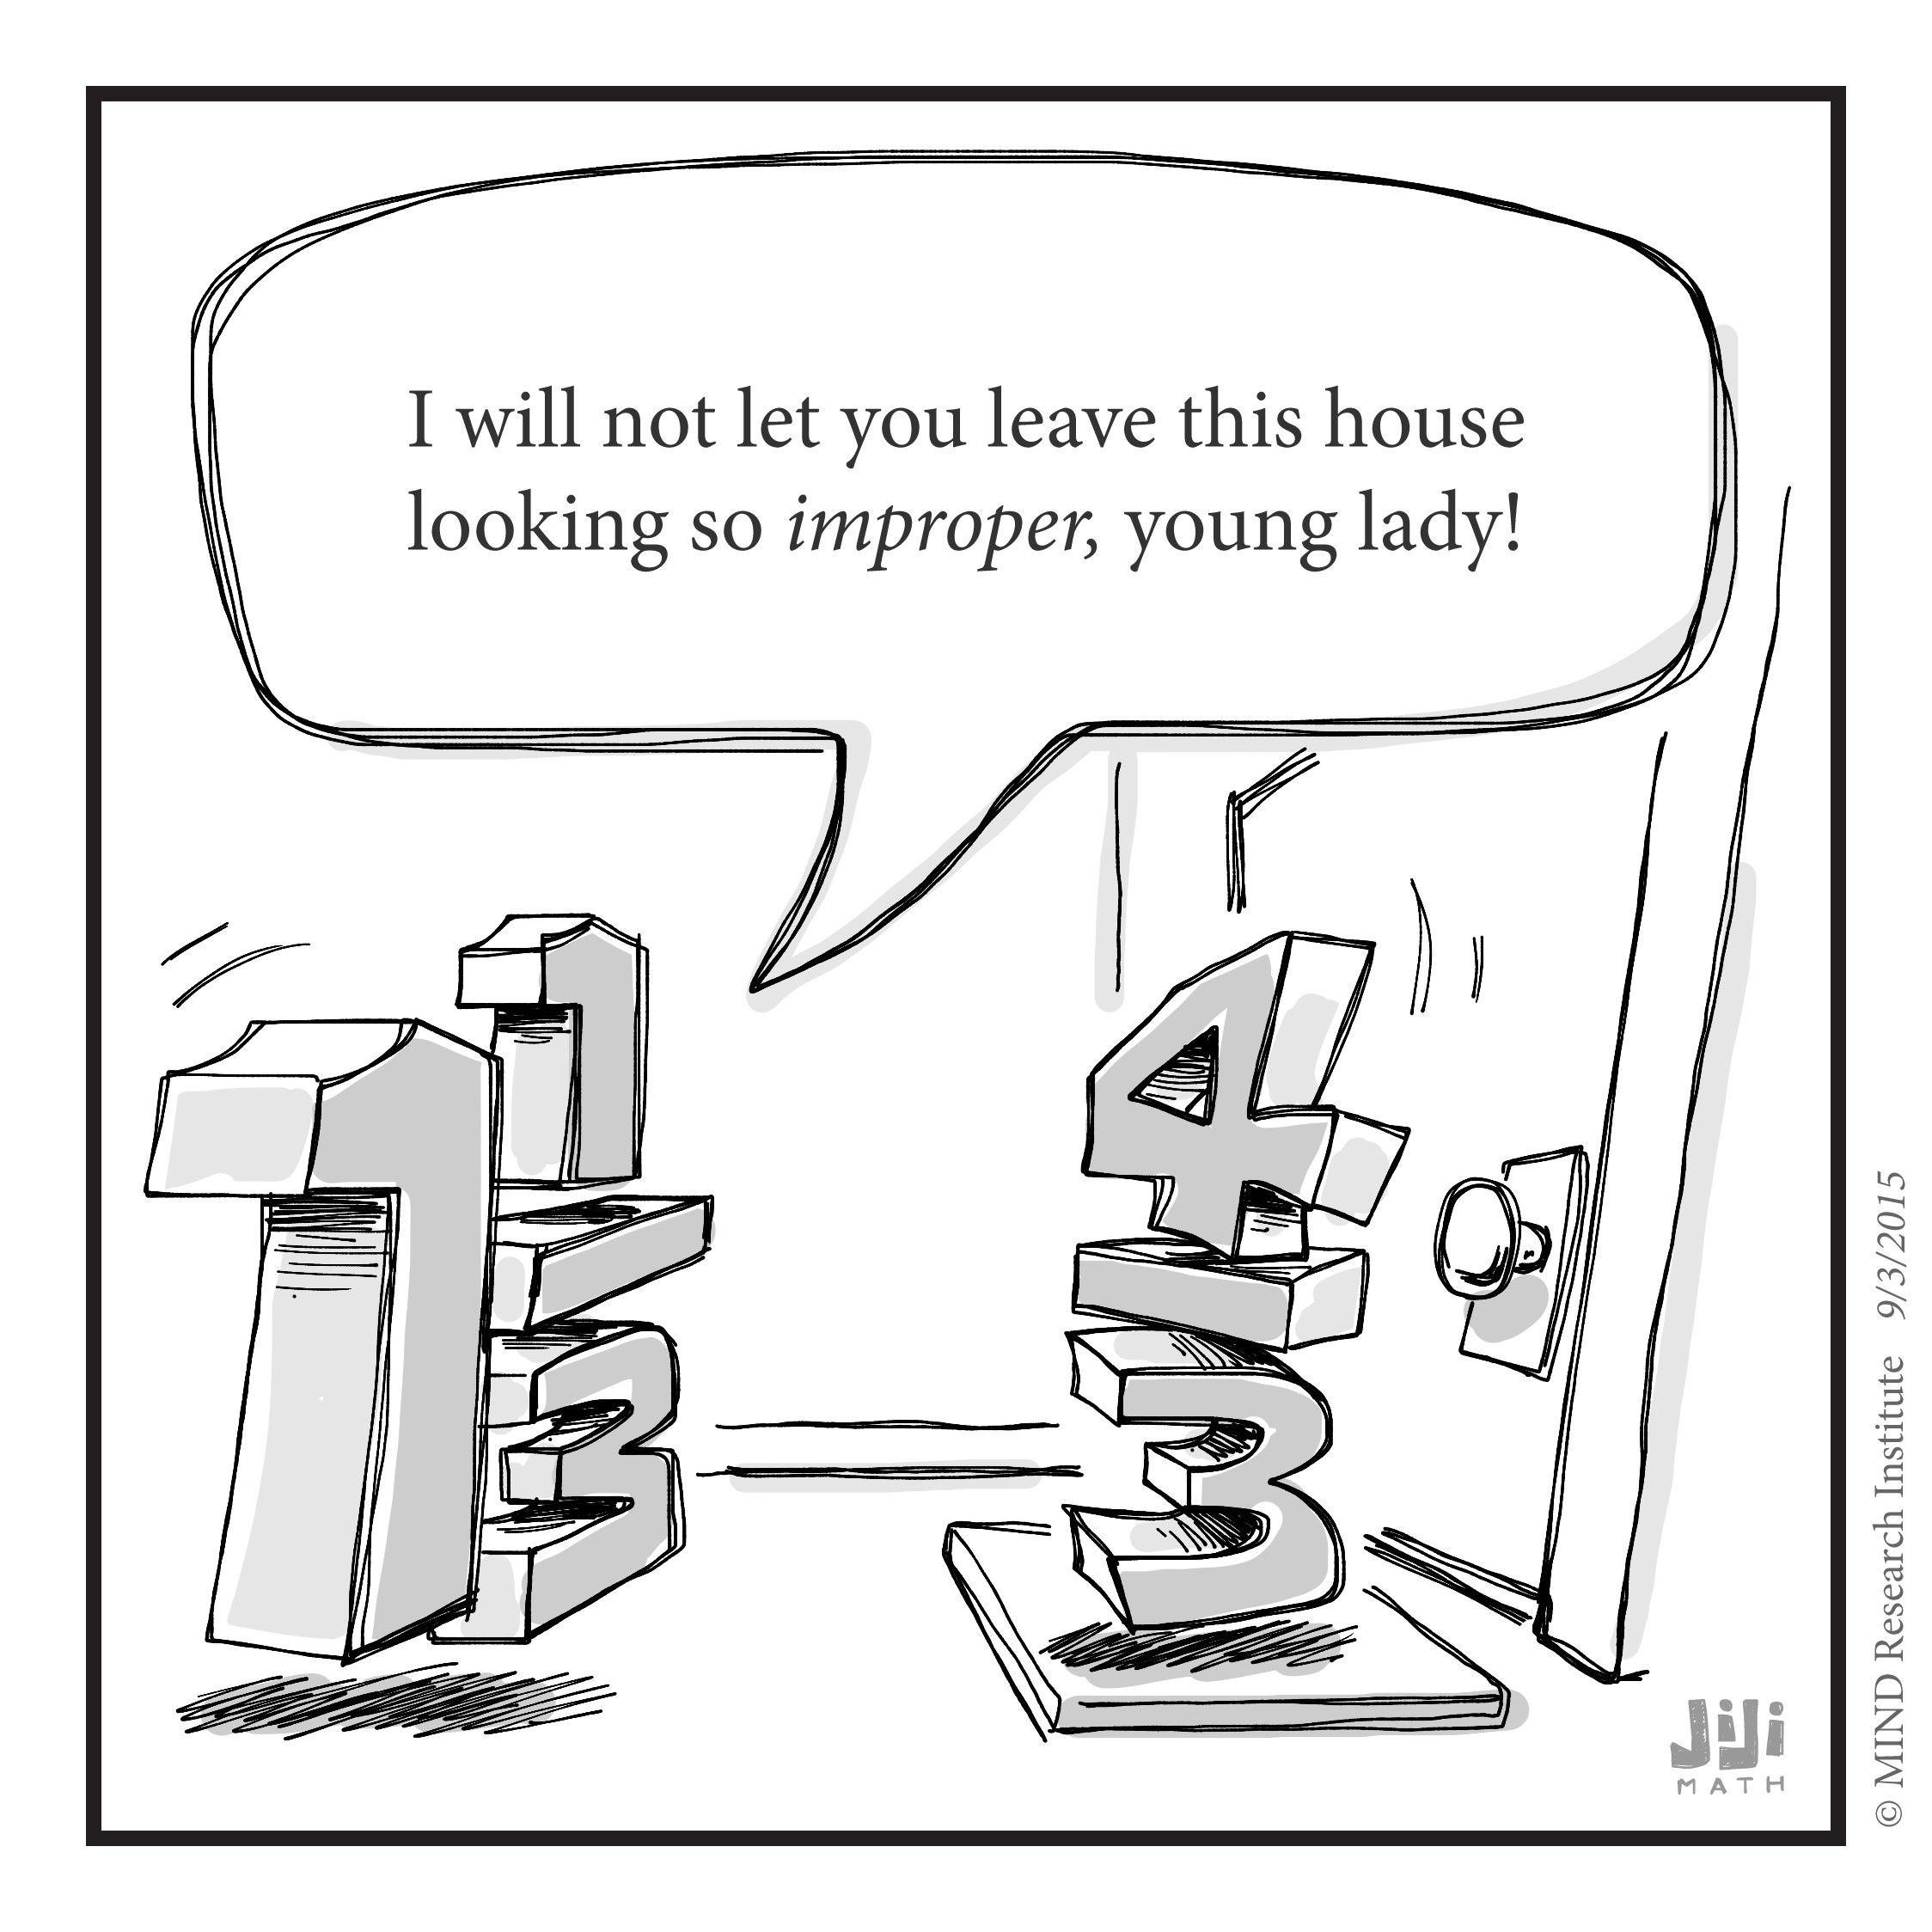 This Funny Math Cartoon From Off The Number Line Questions Why We Consider Improper Fractions A